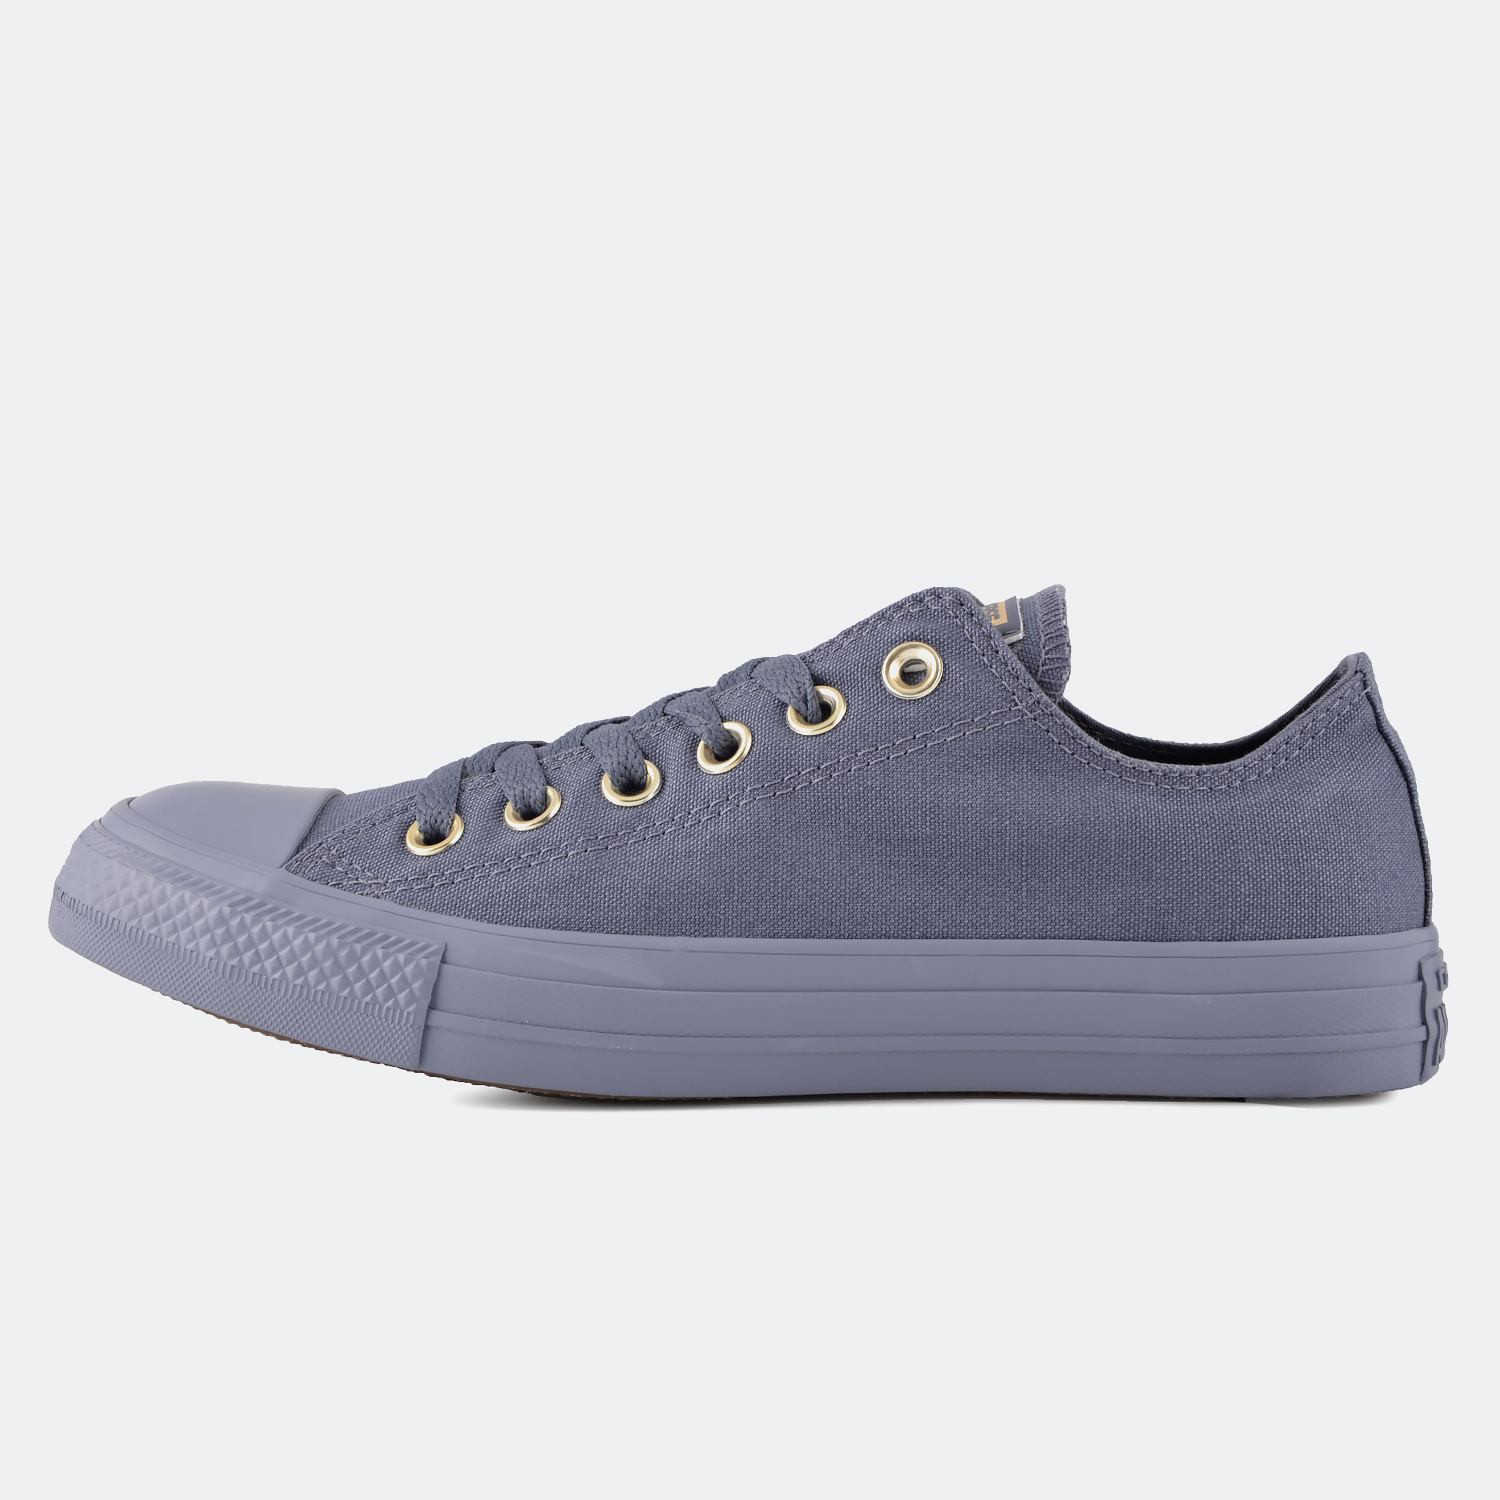 Converse Chuck Taylor All Star Ox | Γυναικεία Sneakers (9000005677_32640)